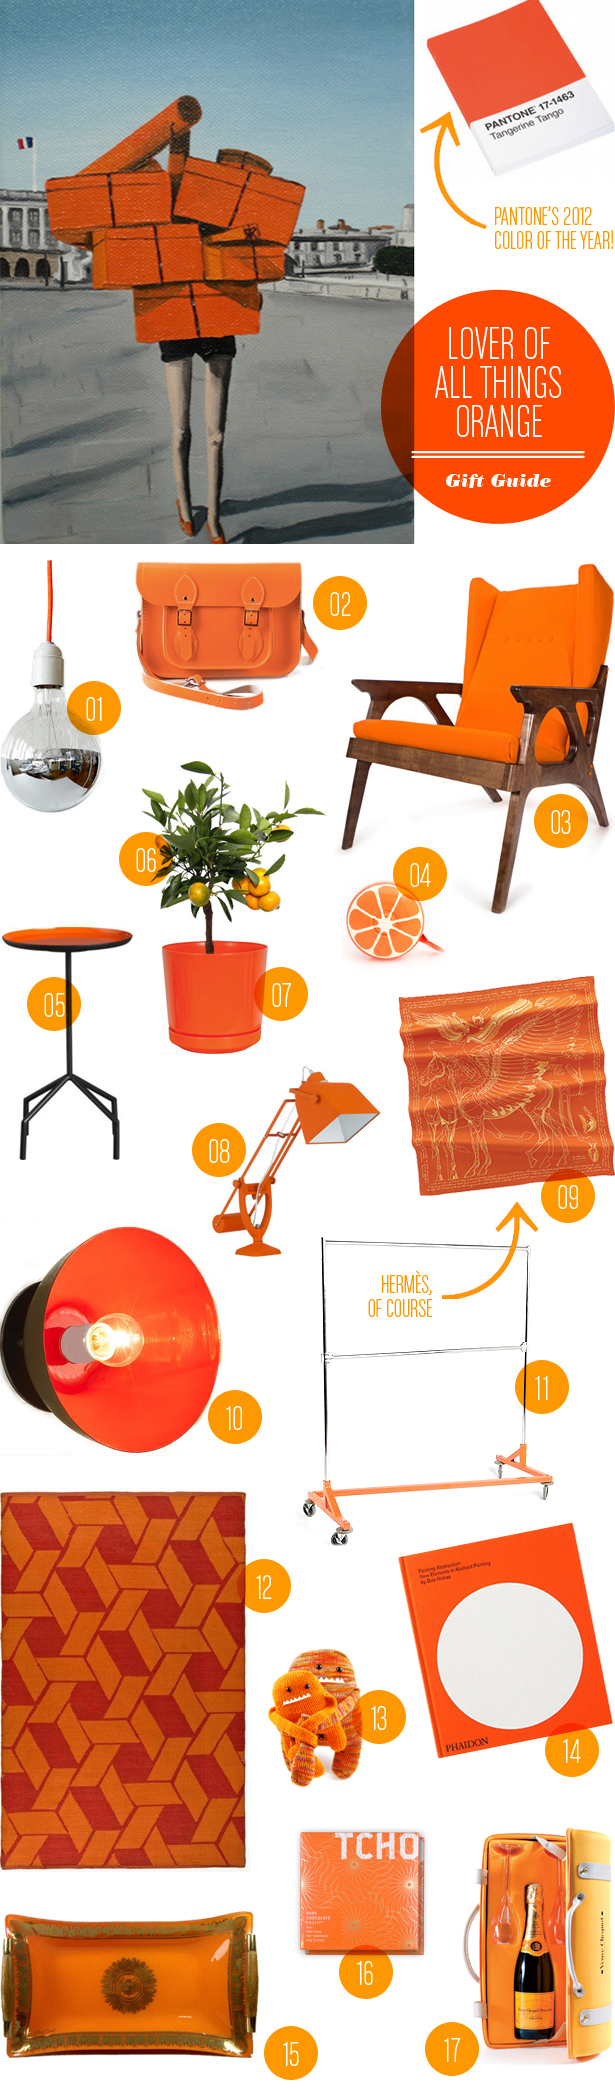 Wedding Blog Zesting Citrus: Gift Guide from MStetson Design